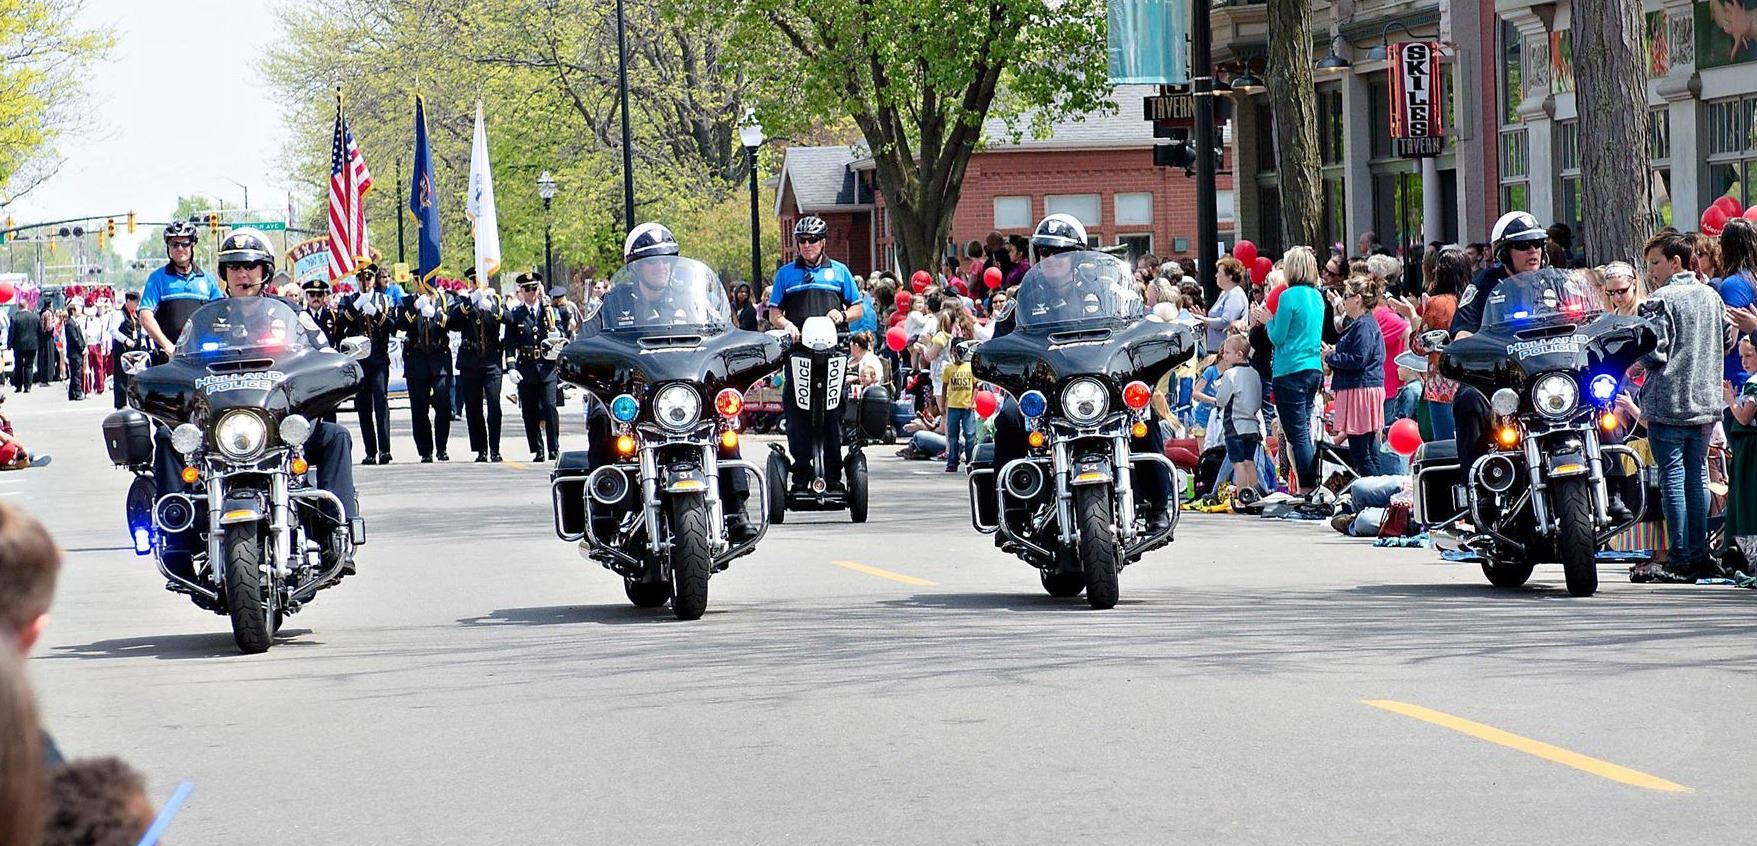 4 officers on motorcycles leading tulip time parade